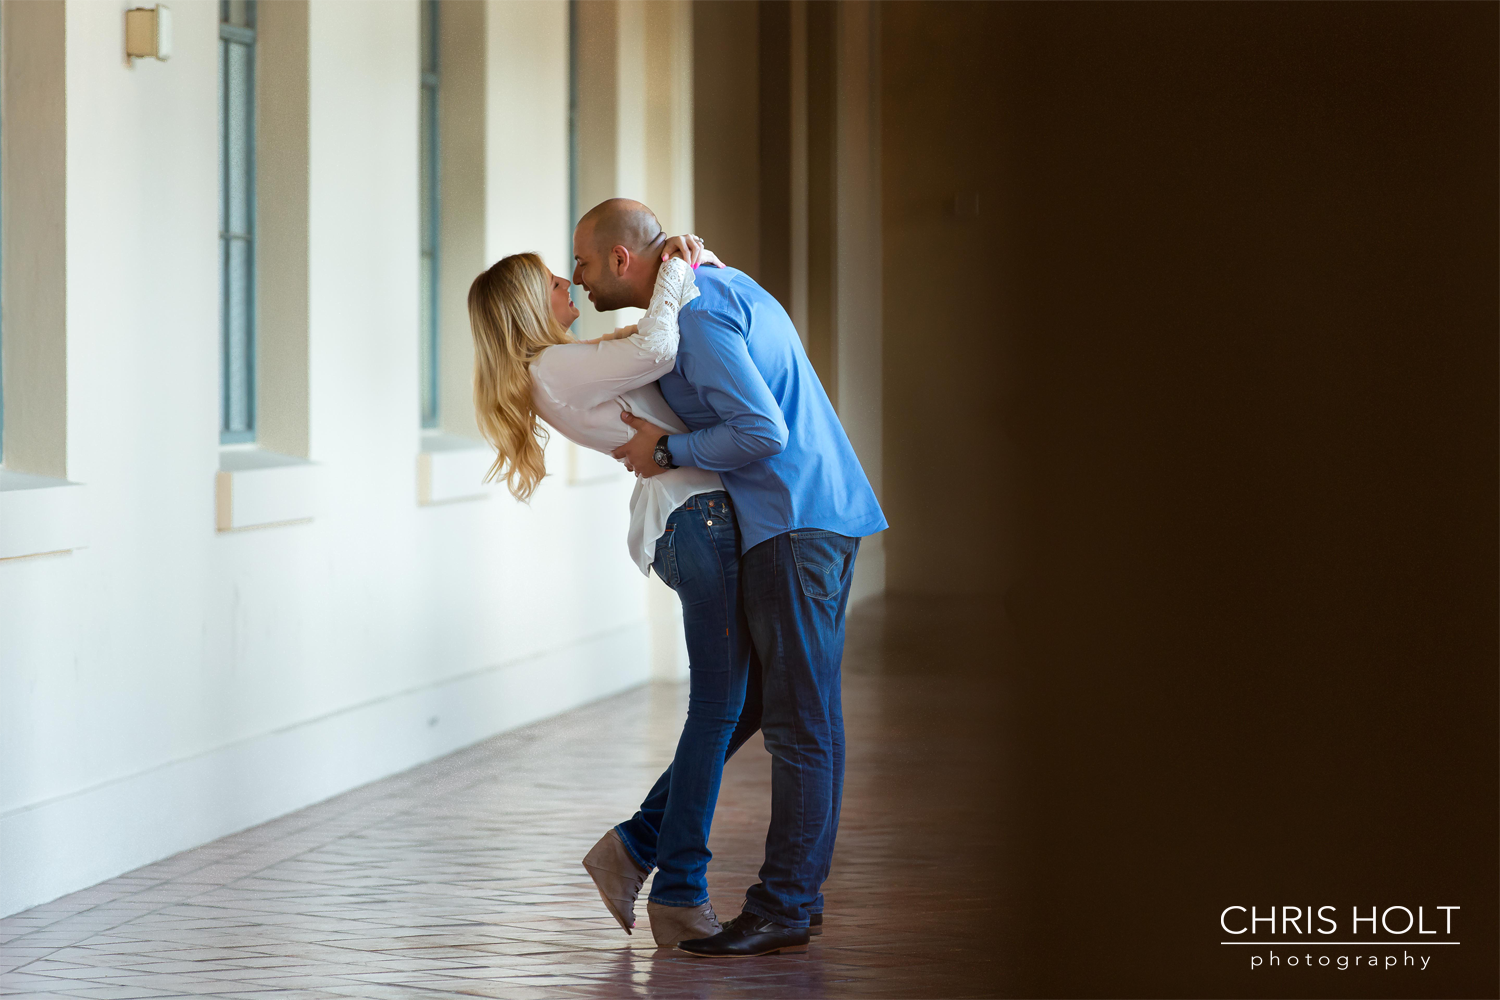 Romantic engagement session in Pasadena with Michelle and Daniel